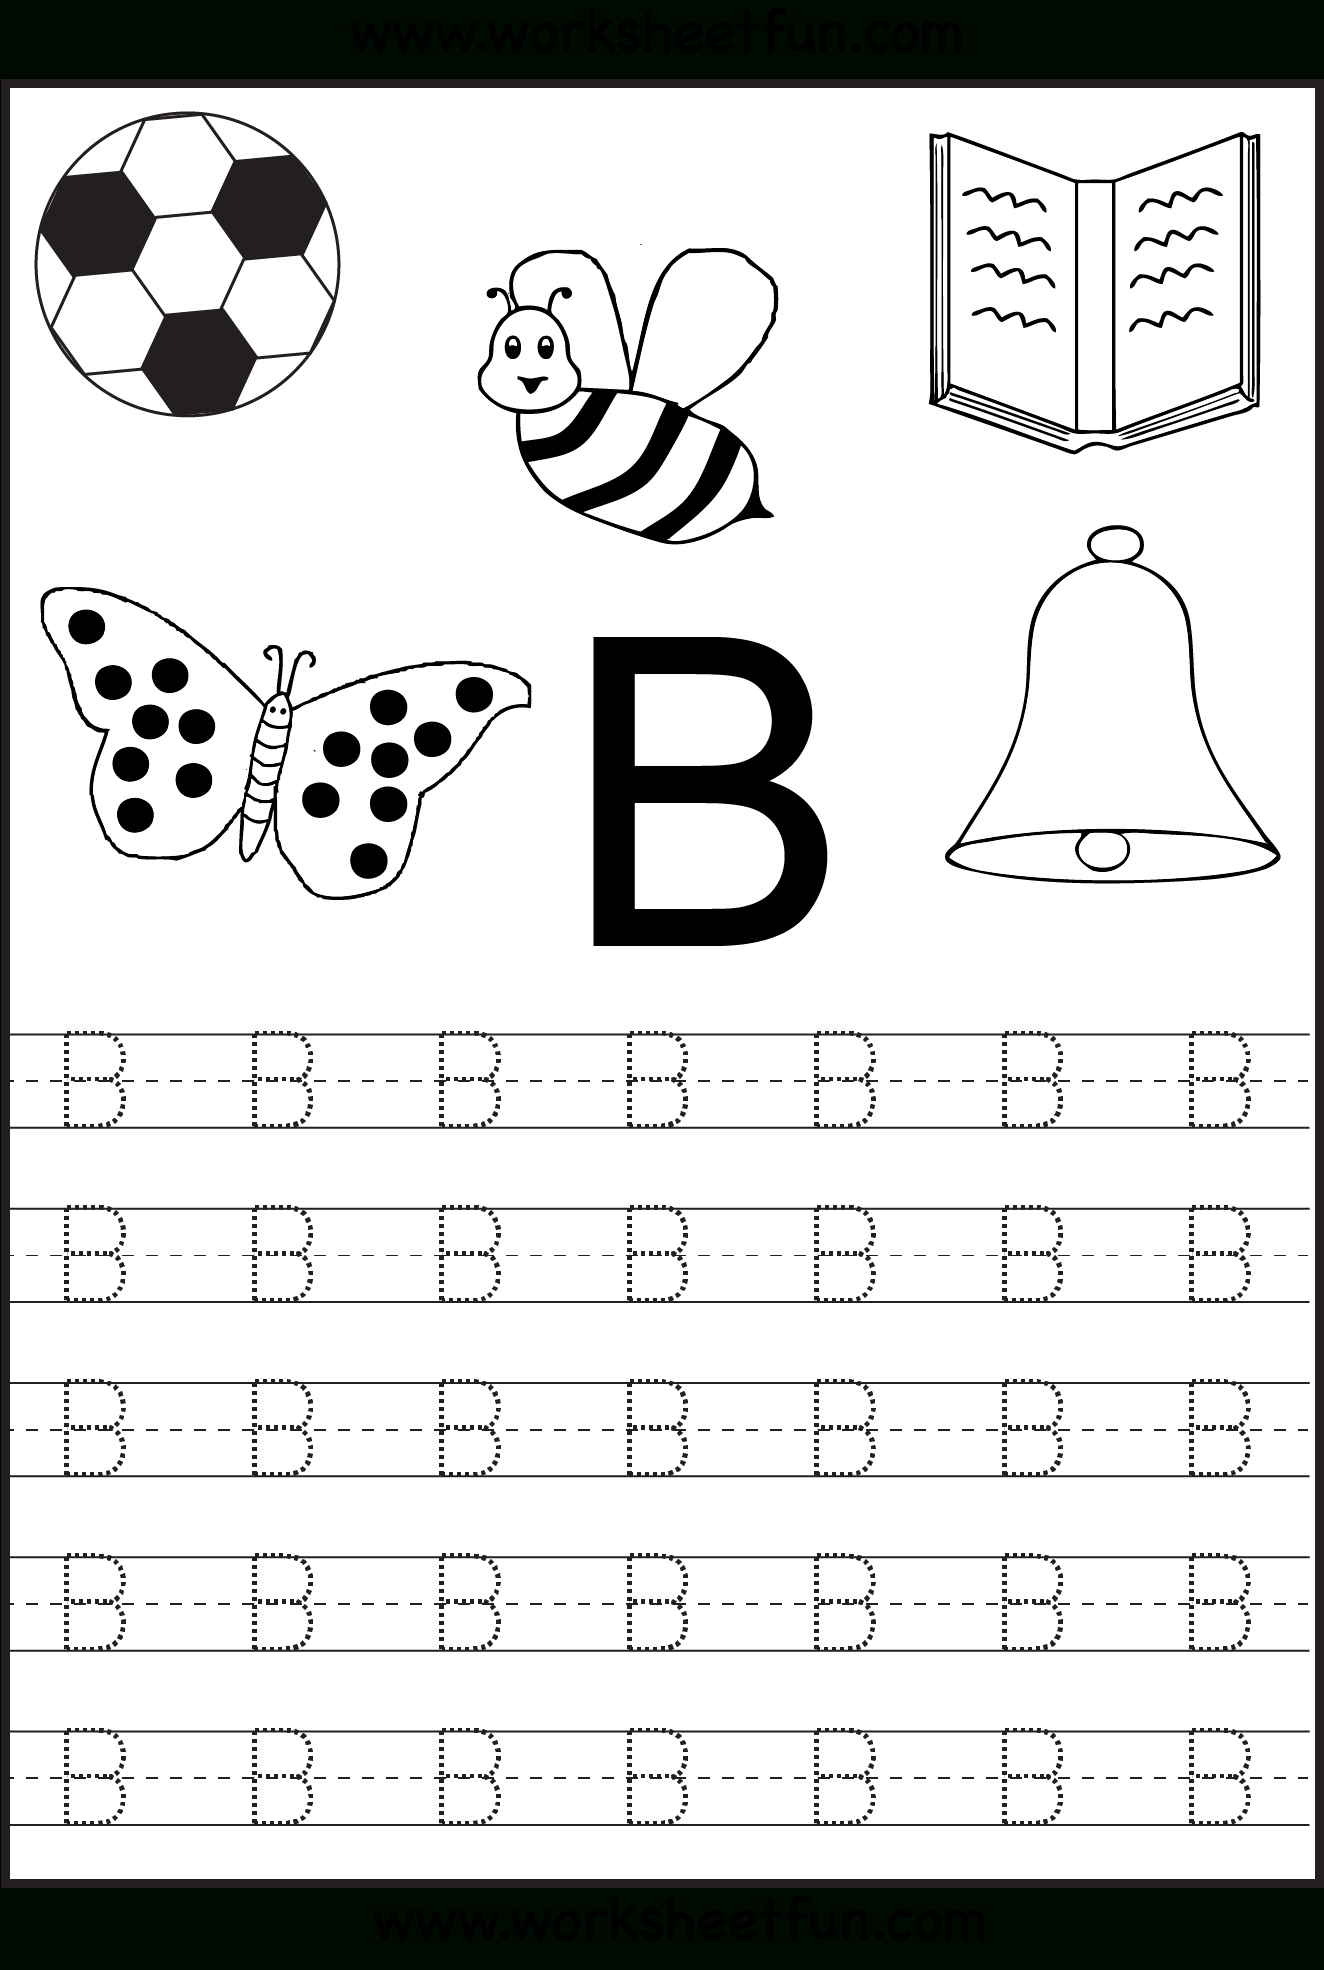 Free Printable Letter Tracing Worksheets For Kindergarten – 26 - Free Printable Preschool Worksheets Tracing Letters